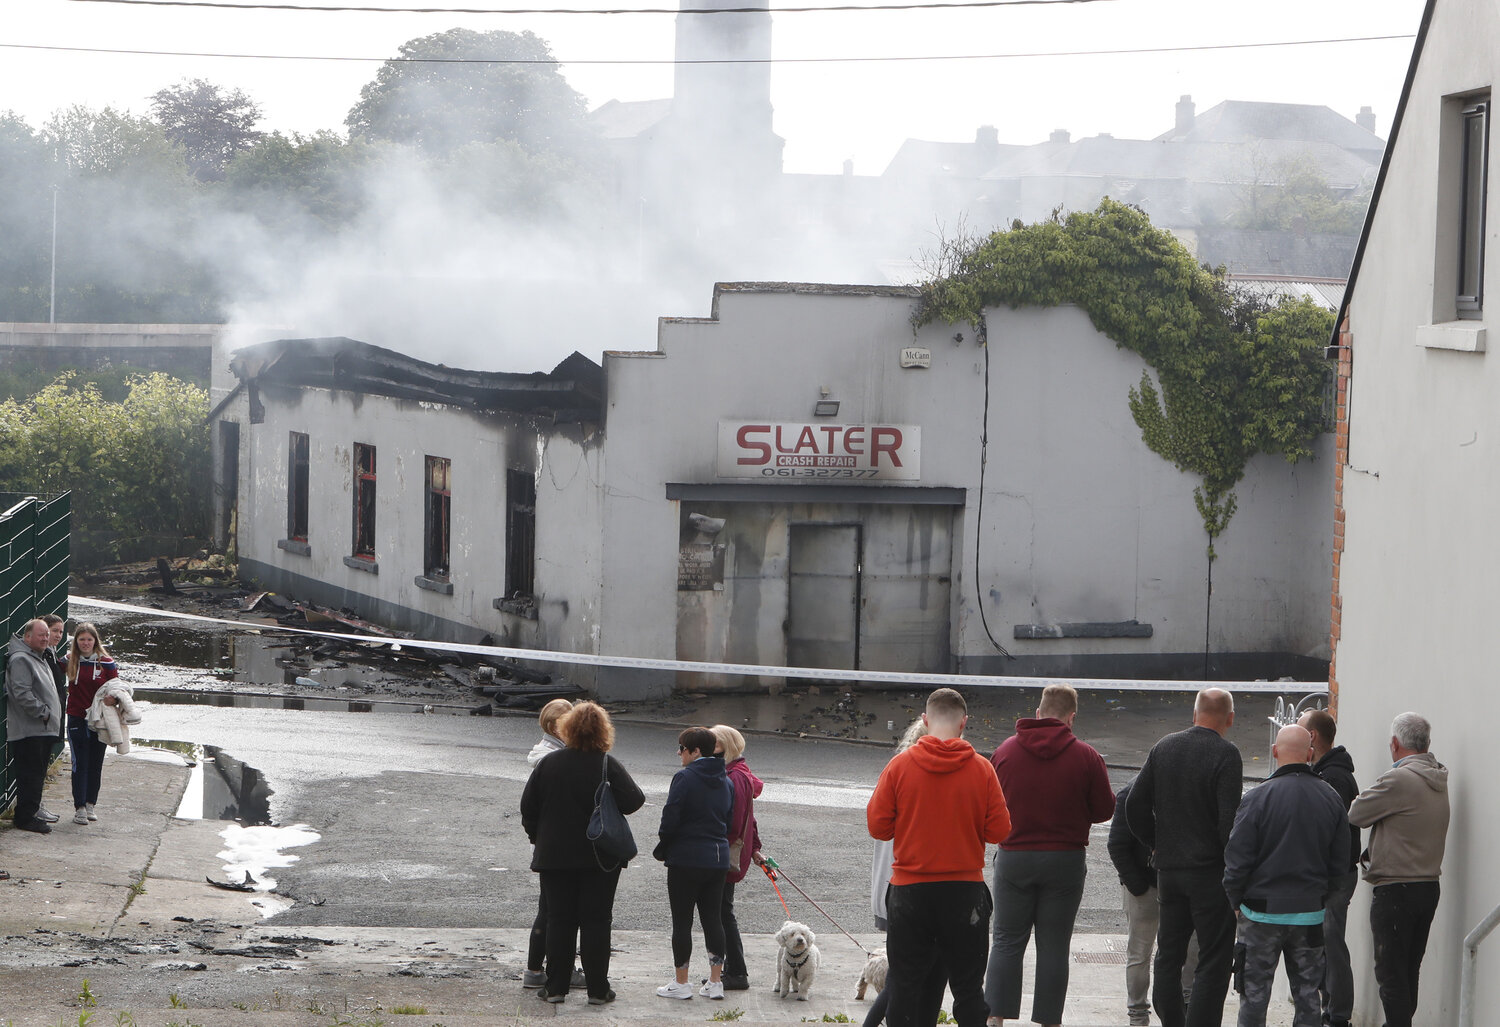 Slater Crash Repairs - Over €14,000 has been raised in funds for popular Limerick business Slater Crash Repairs which was tragically destroyed in a suspected arson attack. Picture: Liam Burke/Press 22